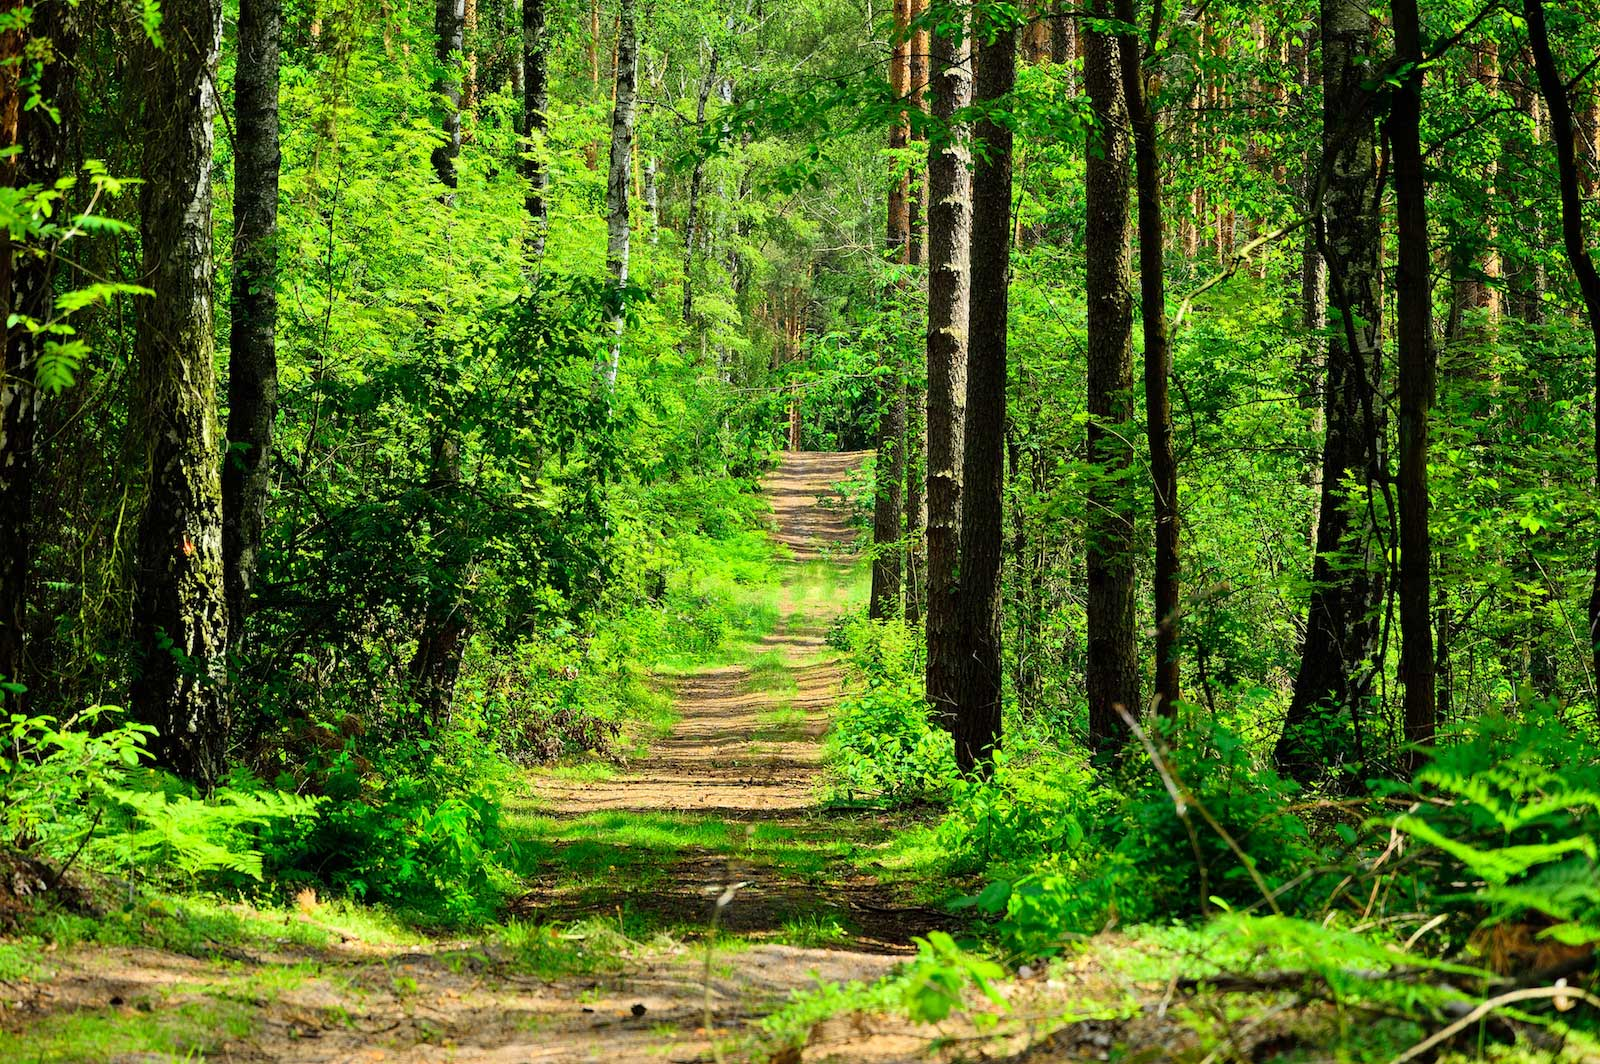 A Forest Stroll is Good for Body and Soul